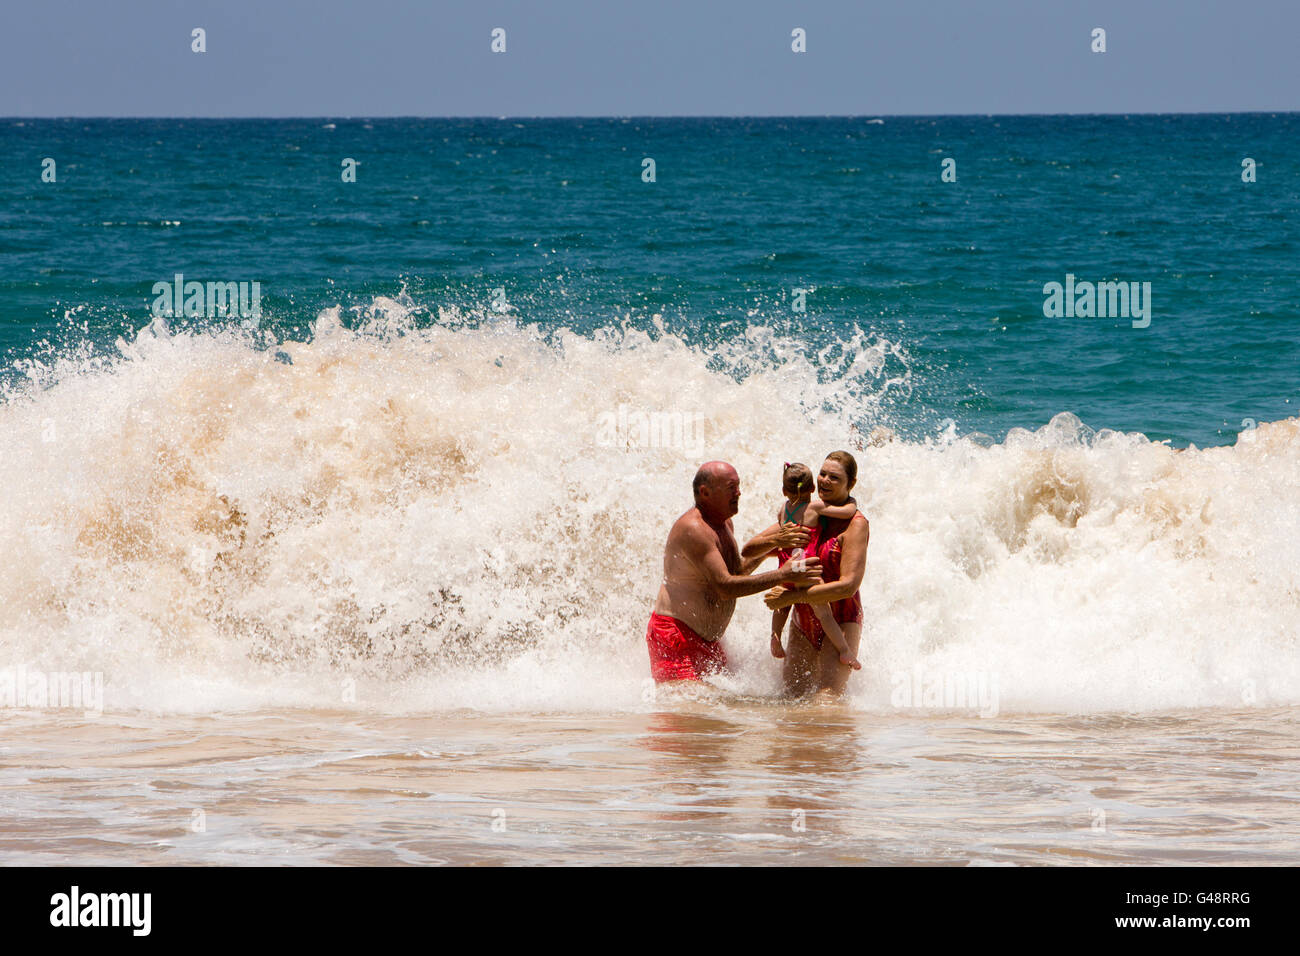 Sri Lanka, Mirissa beach, tourist couple endangering young child in powerful waves - Stock Image